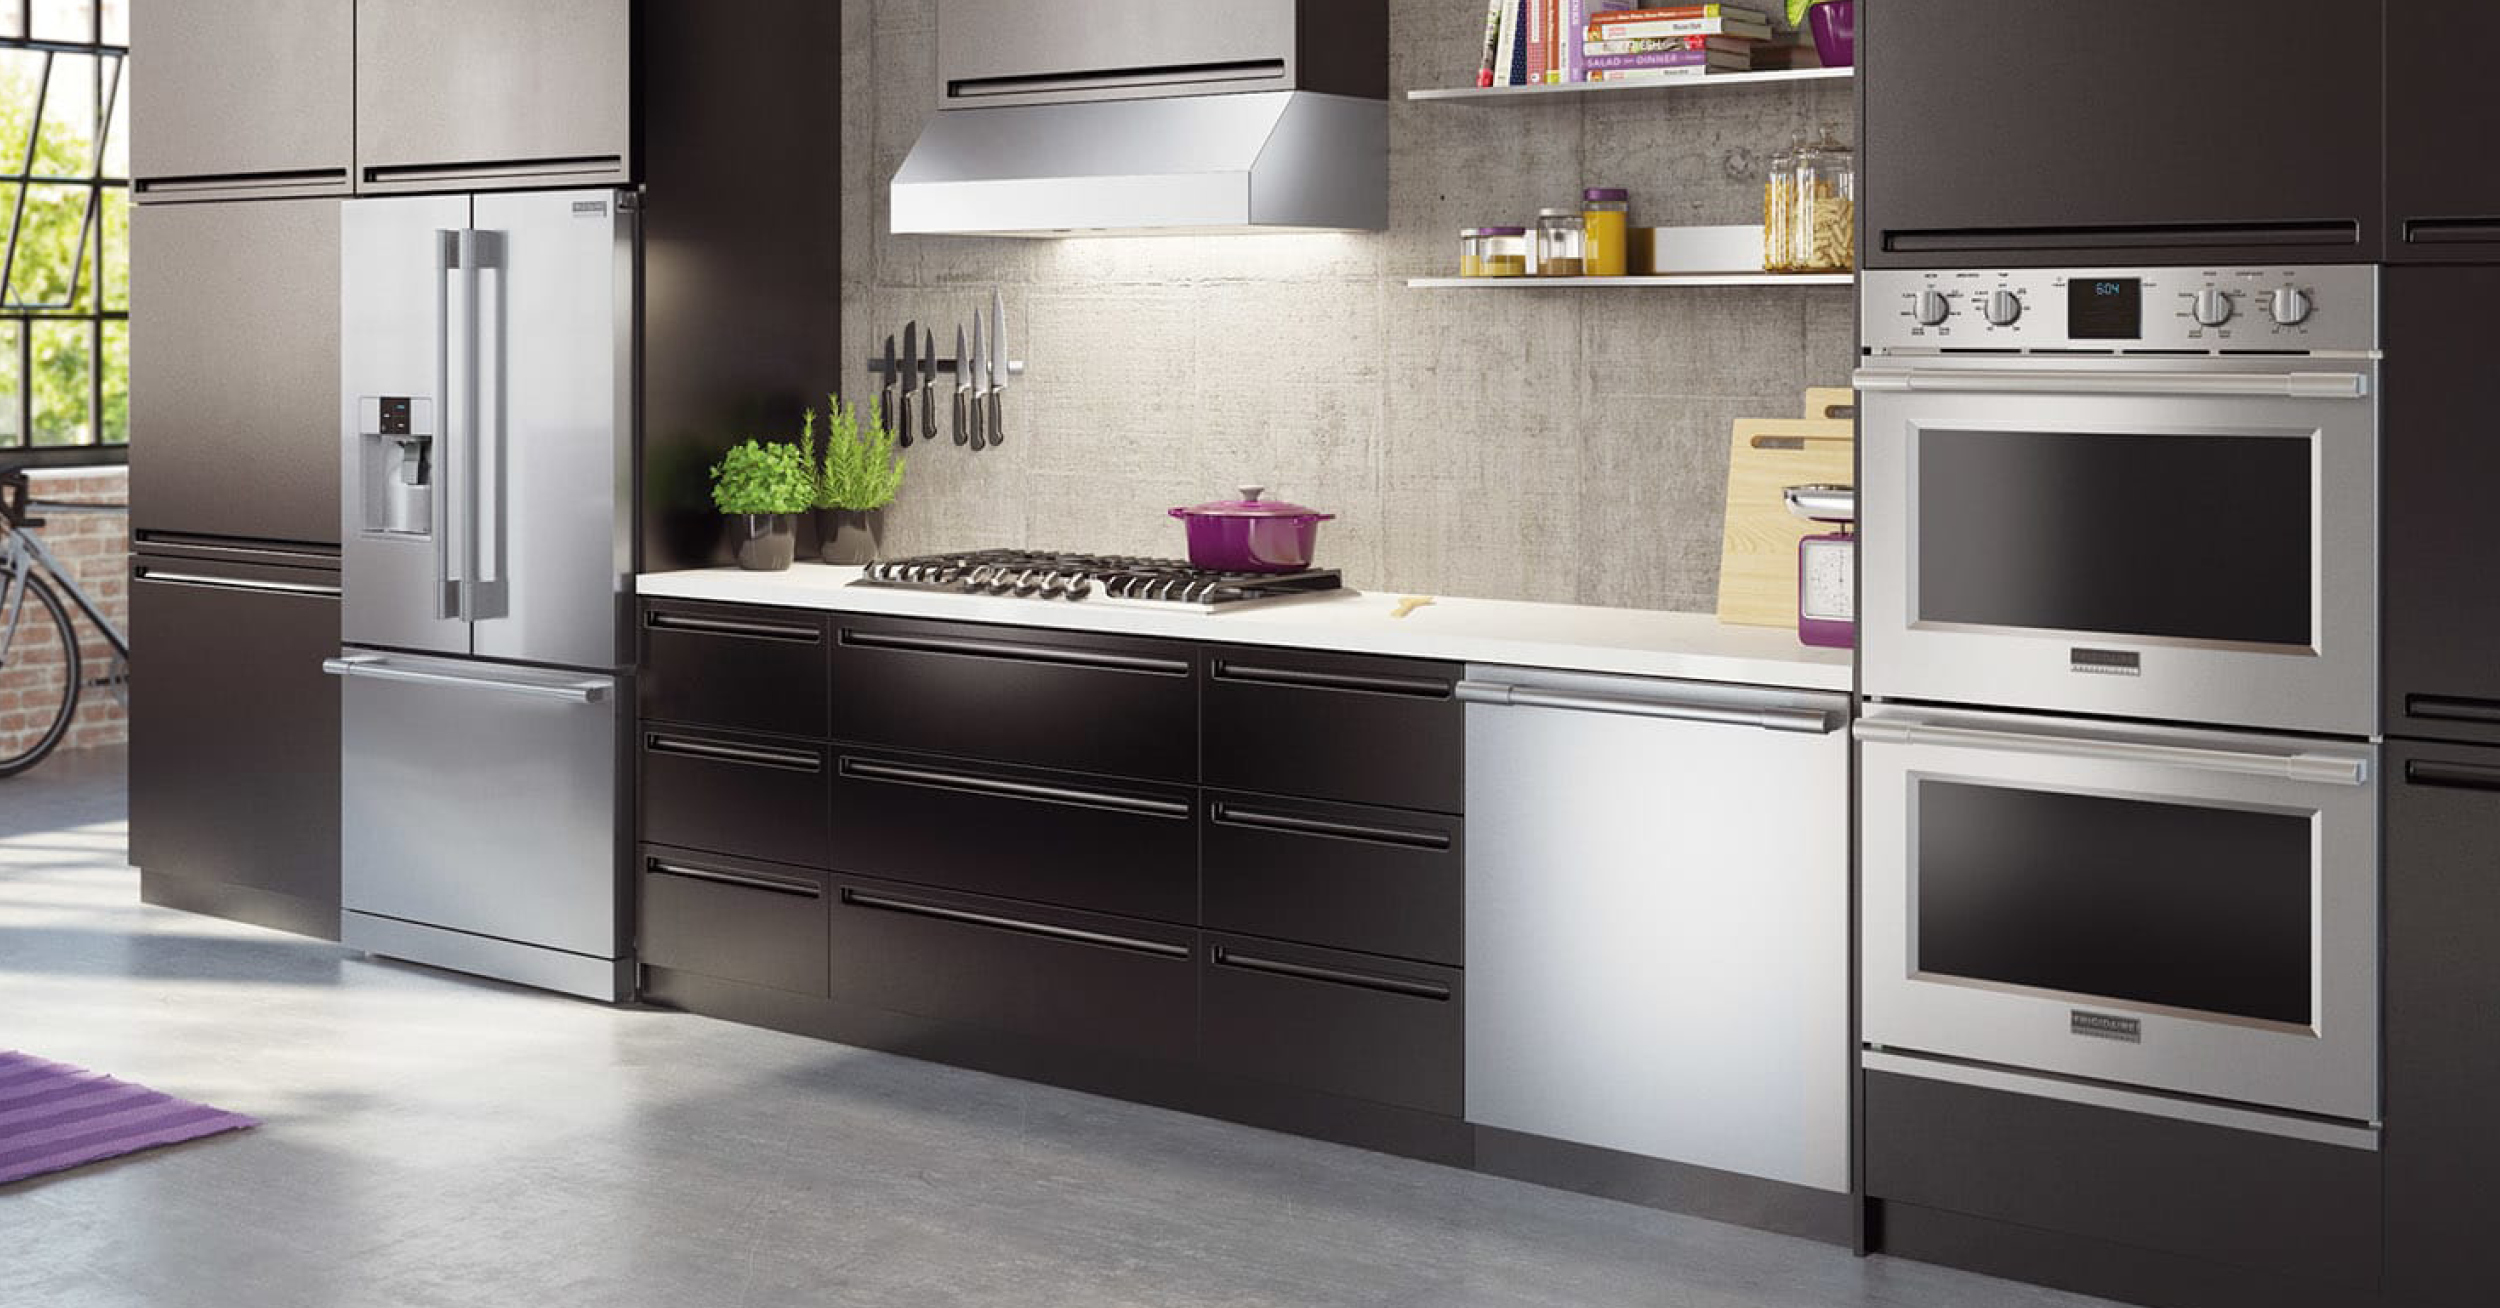 The Best Kitchen Appliances Packages Of 2021 Appliances Connection